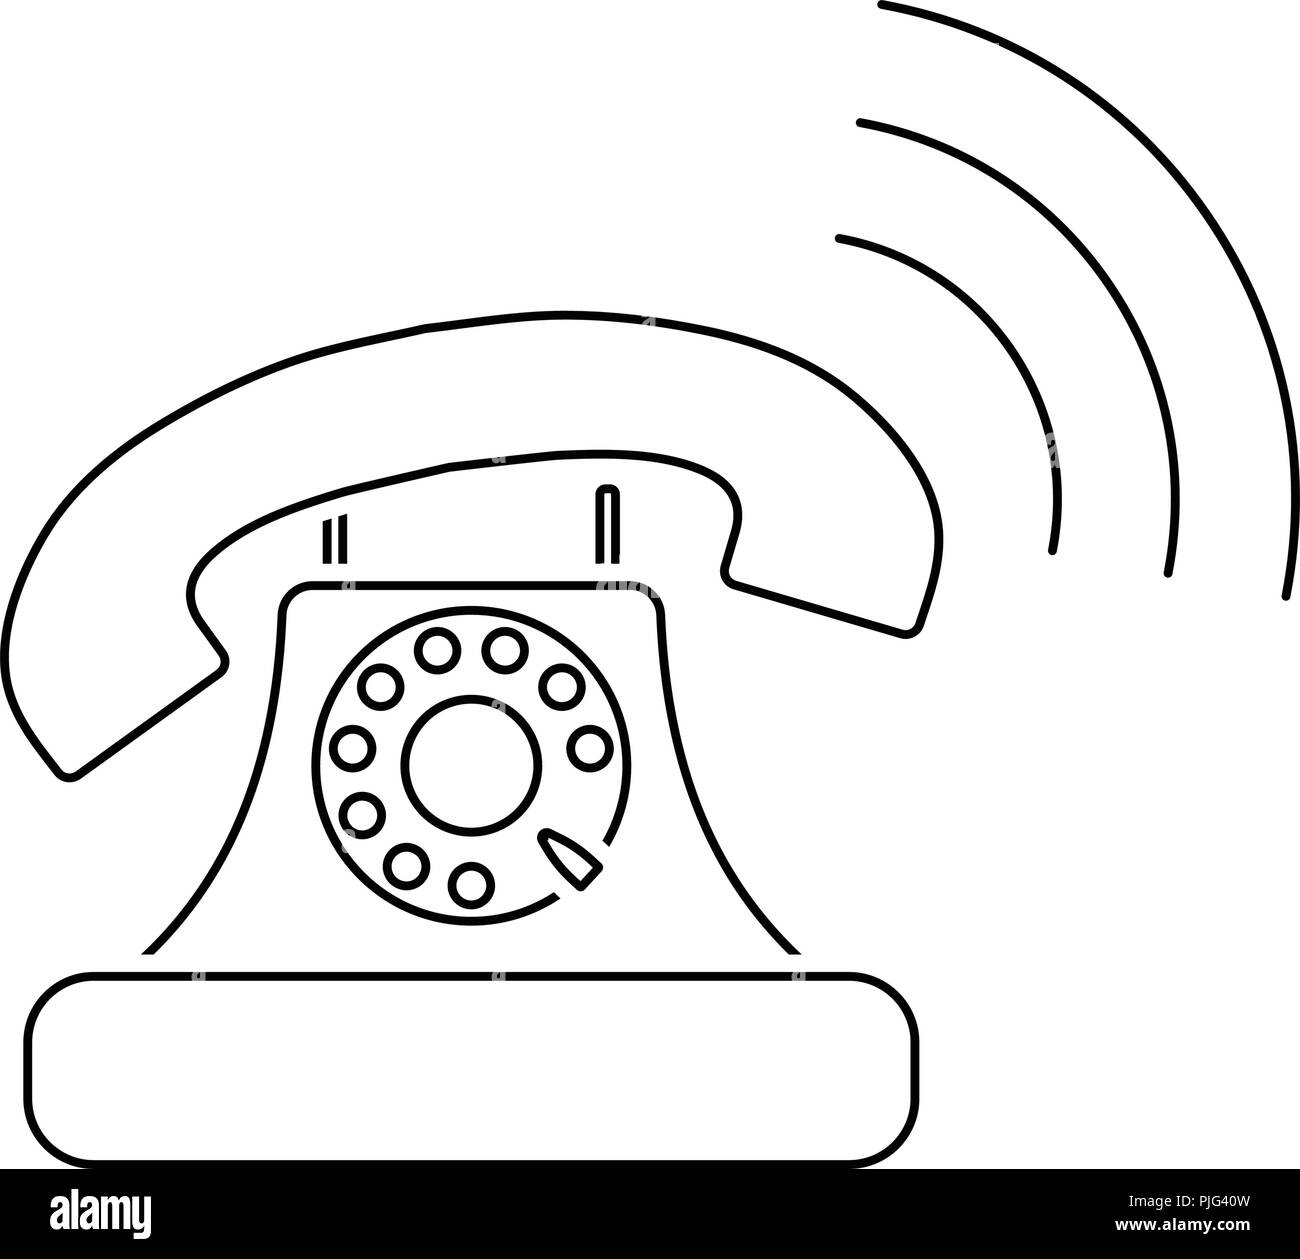 hight resolution of old telephone icon thin line design vector illustration